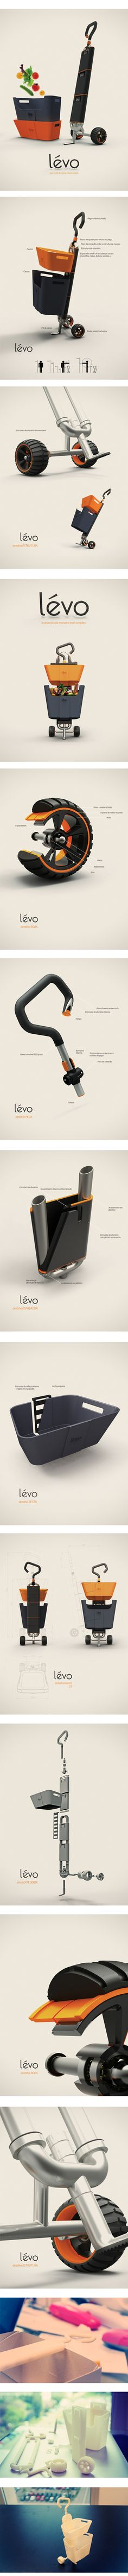 LEVO PRESENTATION LAYOUT -very clean and proper mood for the product